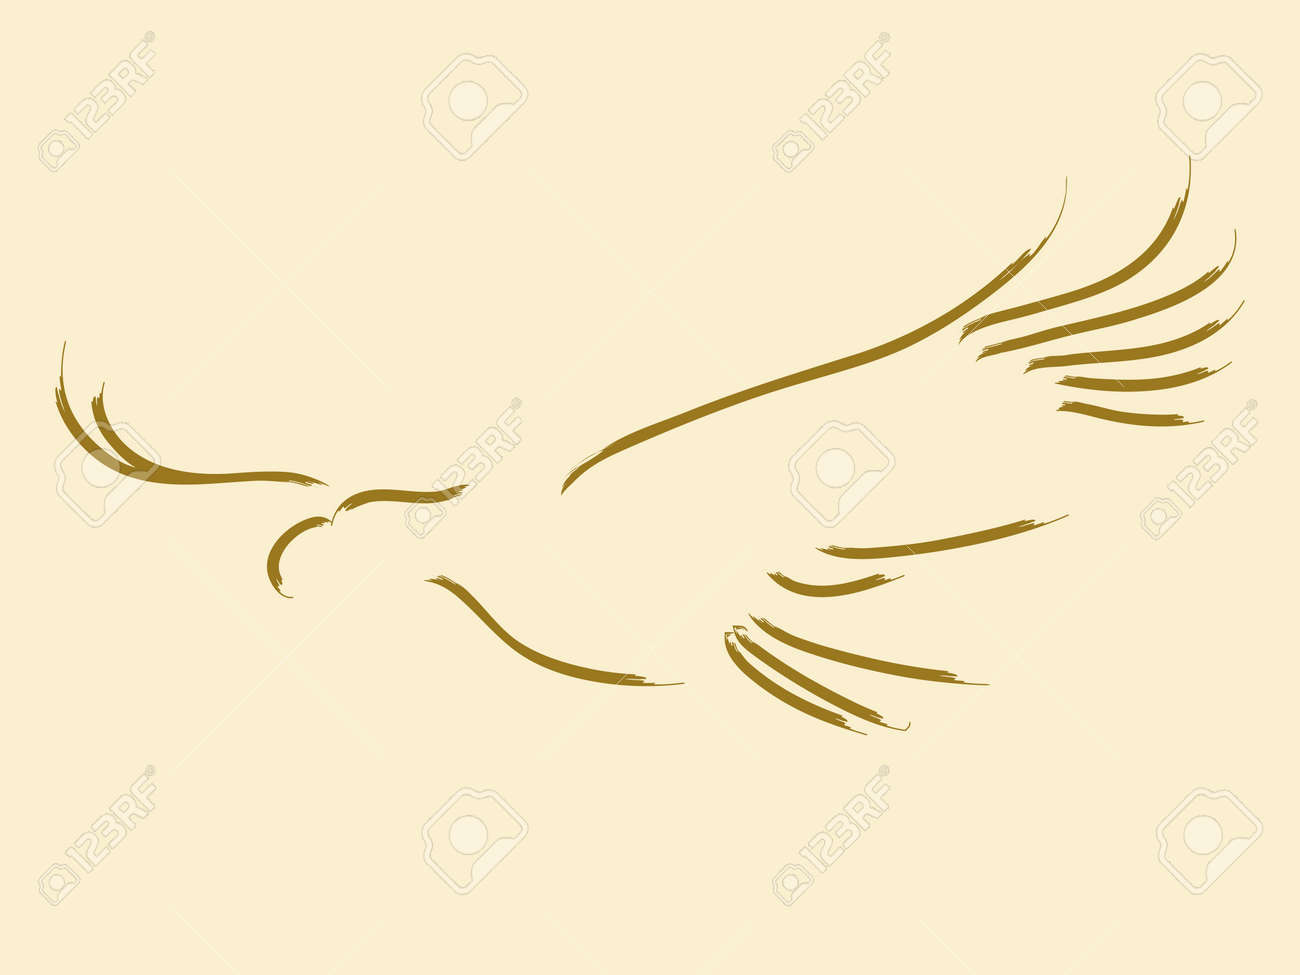 Simple Sketch Of A Soaring Eagle Royalty Free Cliparts, Vectors, And ...